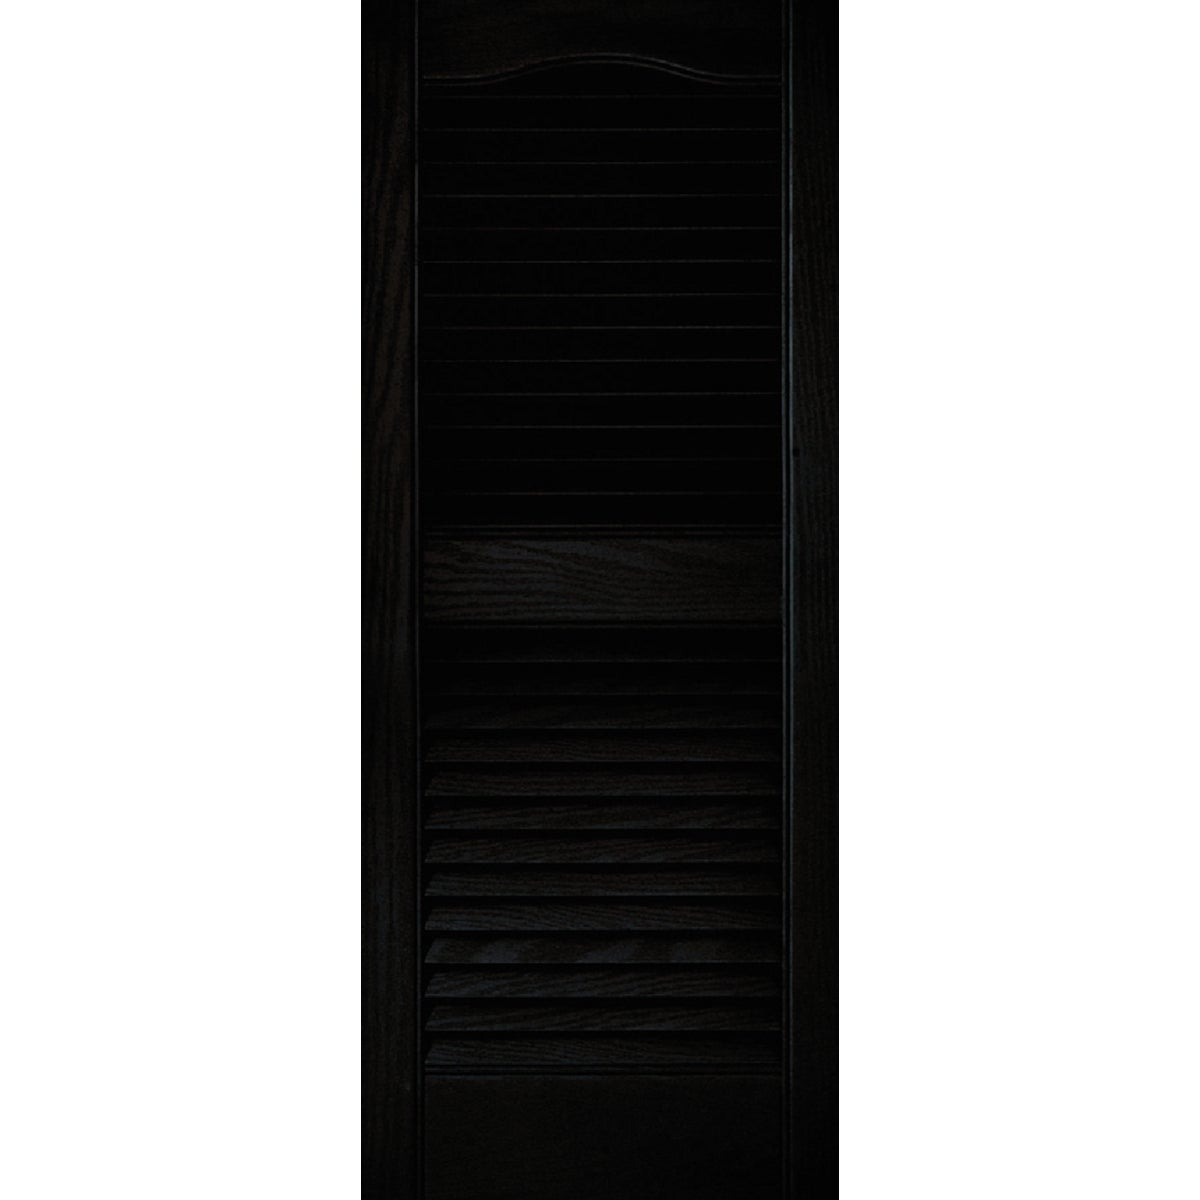 15X36 BLK LOUVER SHUTTER - 020140036002 by The Tapco Group